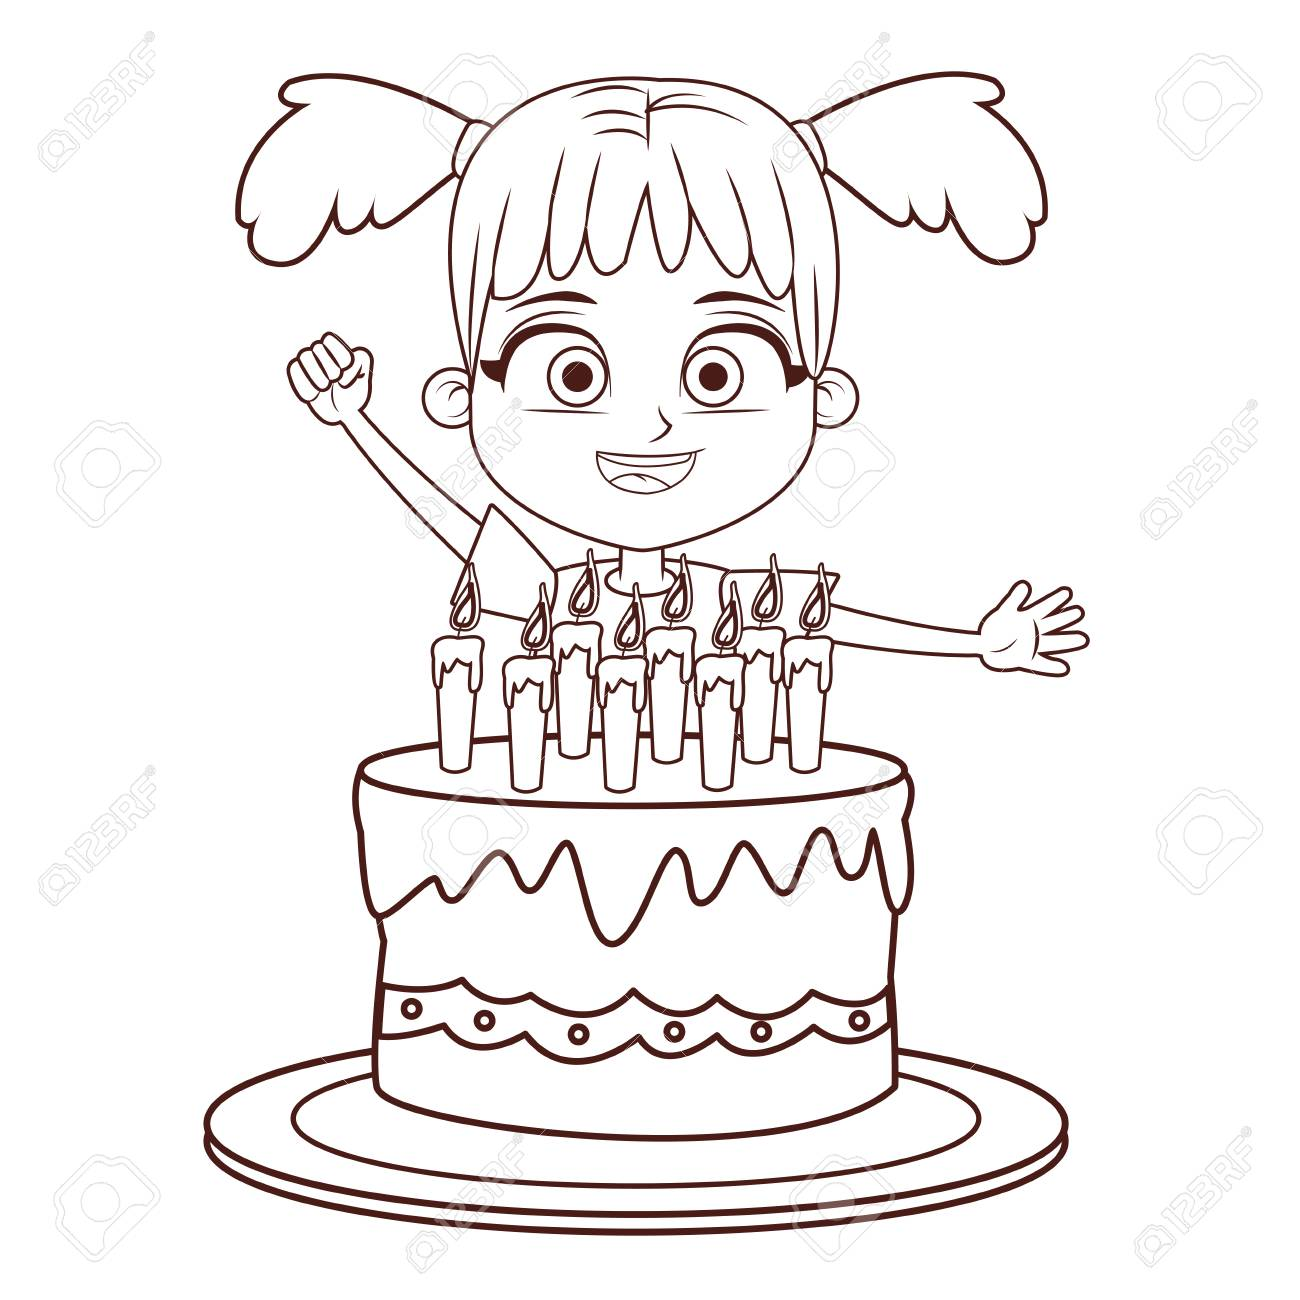 Girl Birthday Party With Cake Cartoon In Black And White Vector